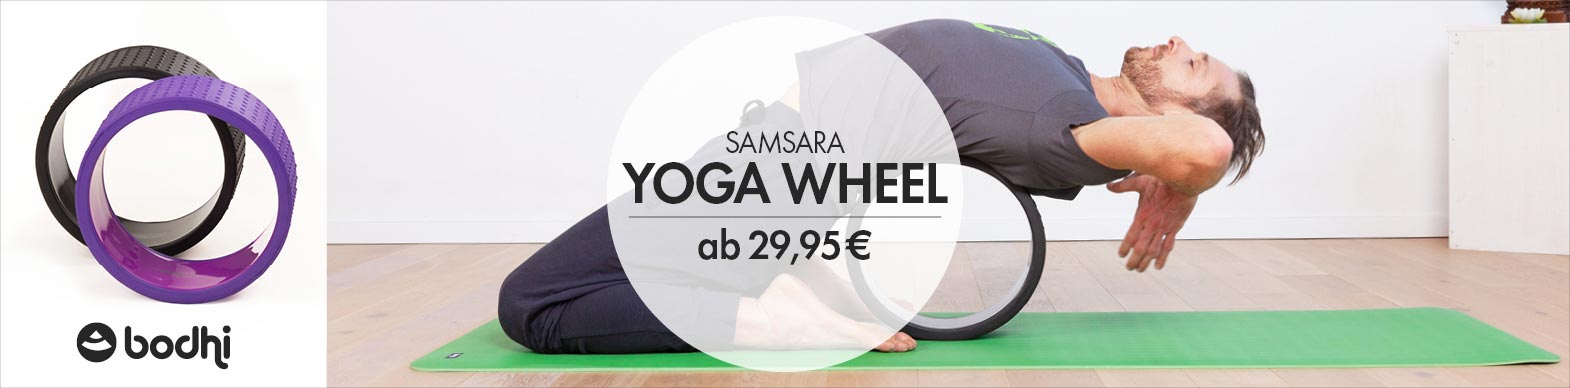 Yoga Wheels - Samsara von bodhi